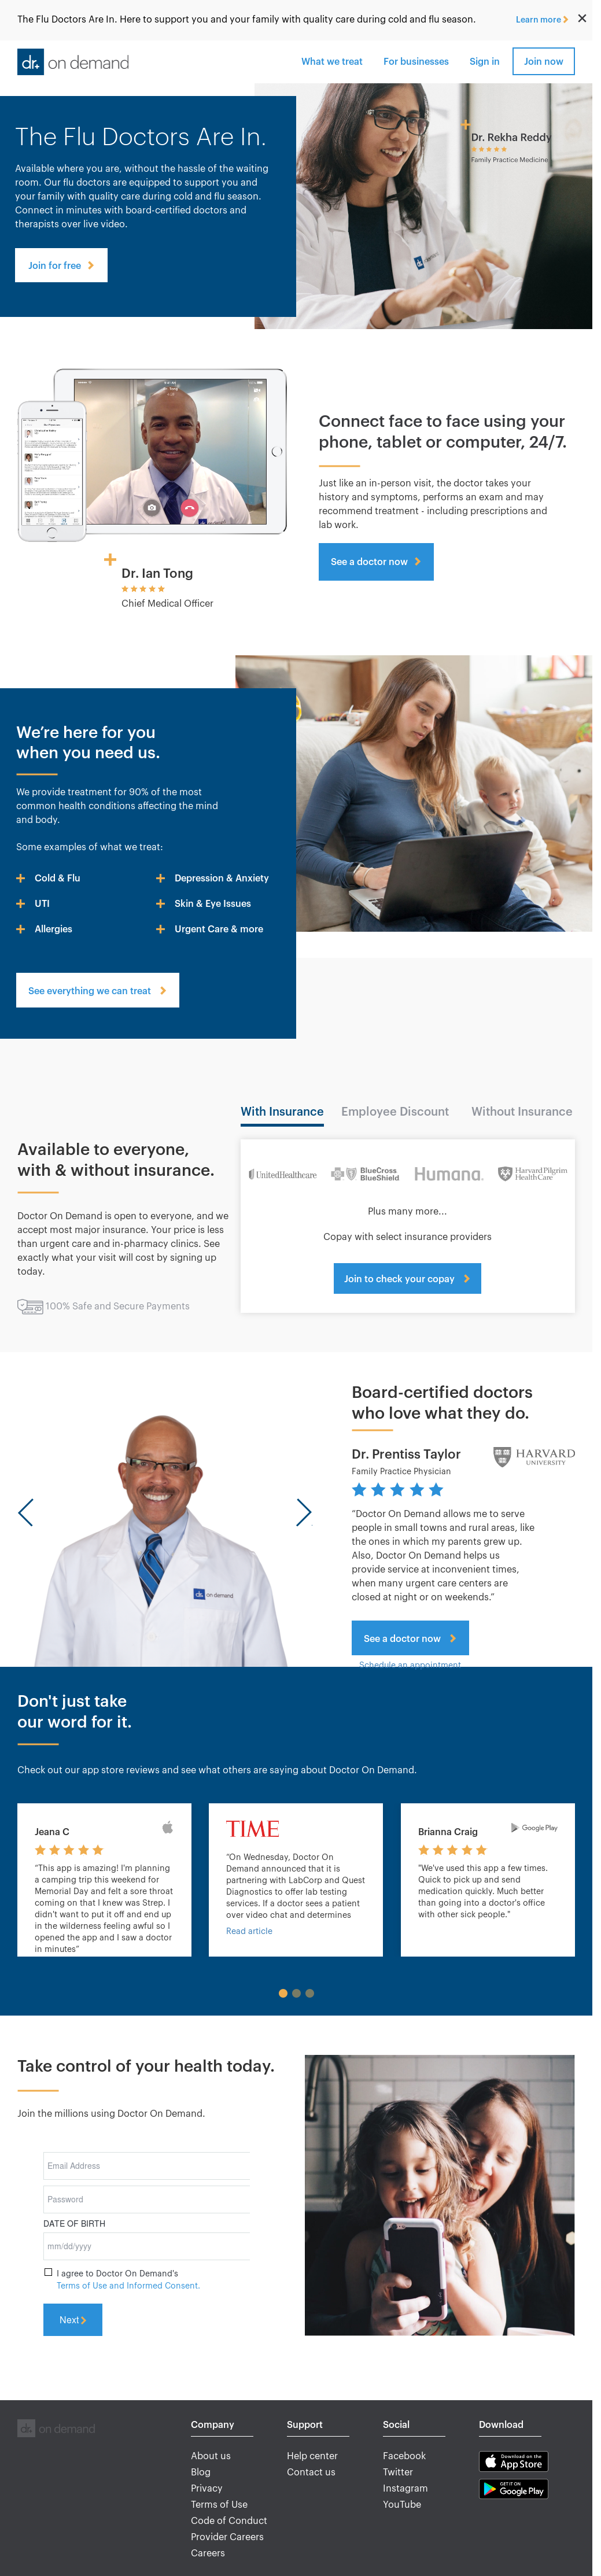 Doctor On Demand Competitors, Revenue and Employees - Owler Company